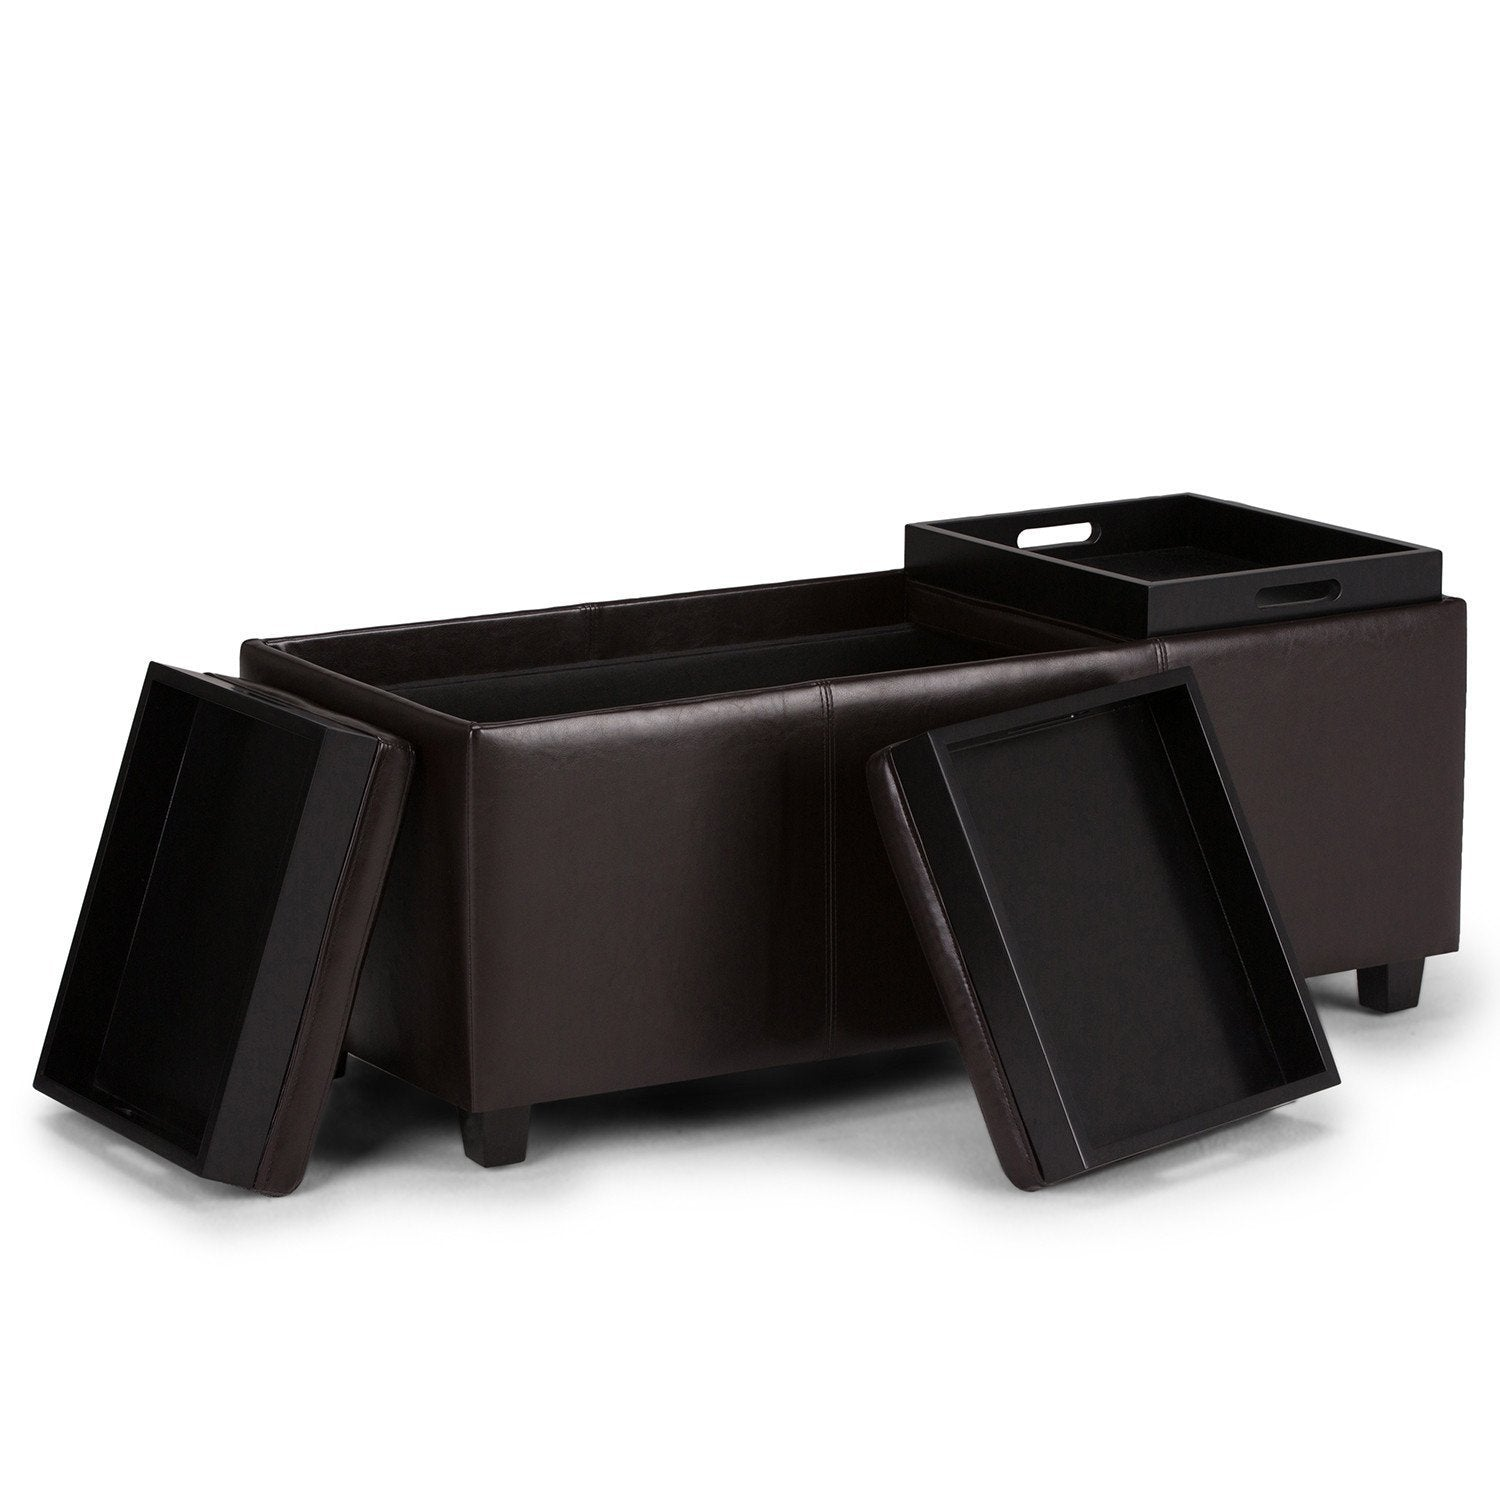 Swell Storage Ottomans Benches Simpli Home Ncnpc Chair Design For Home Ncnpcorg